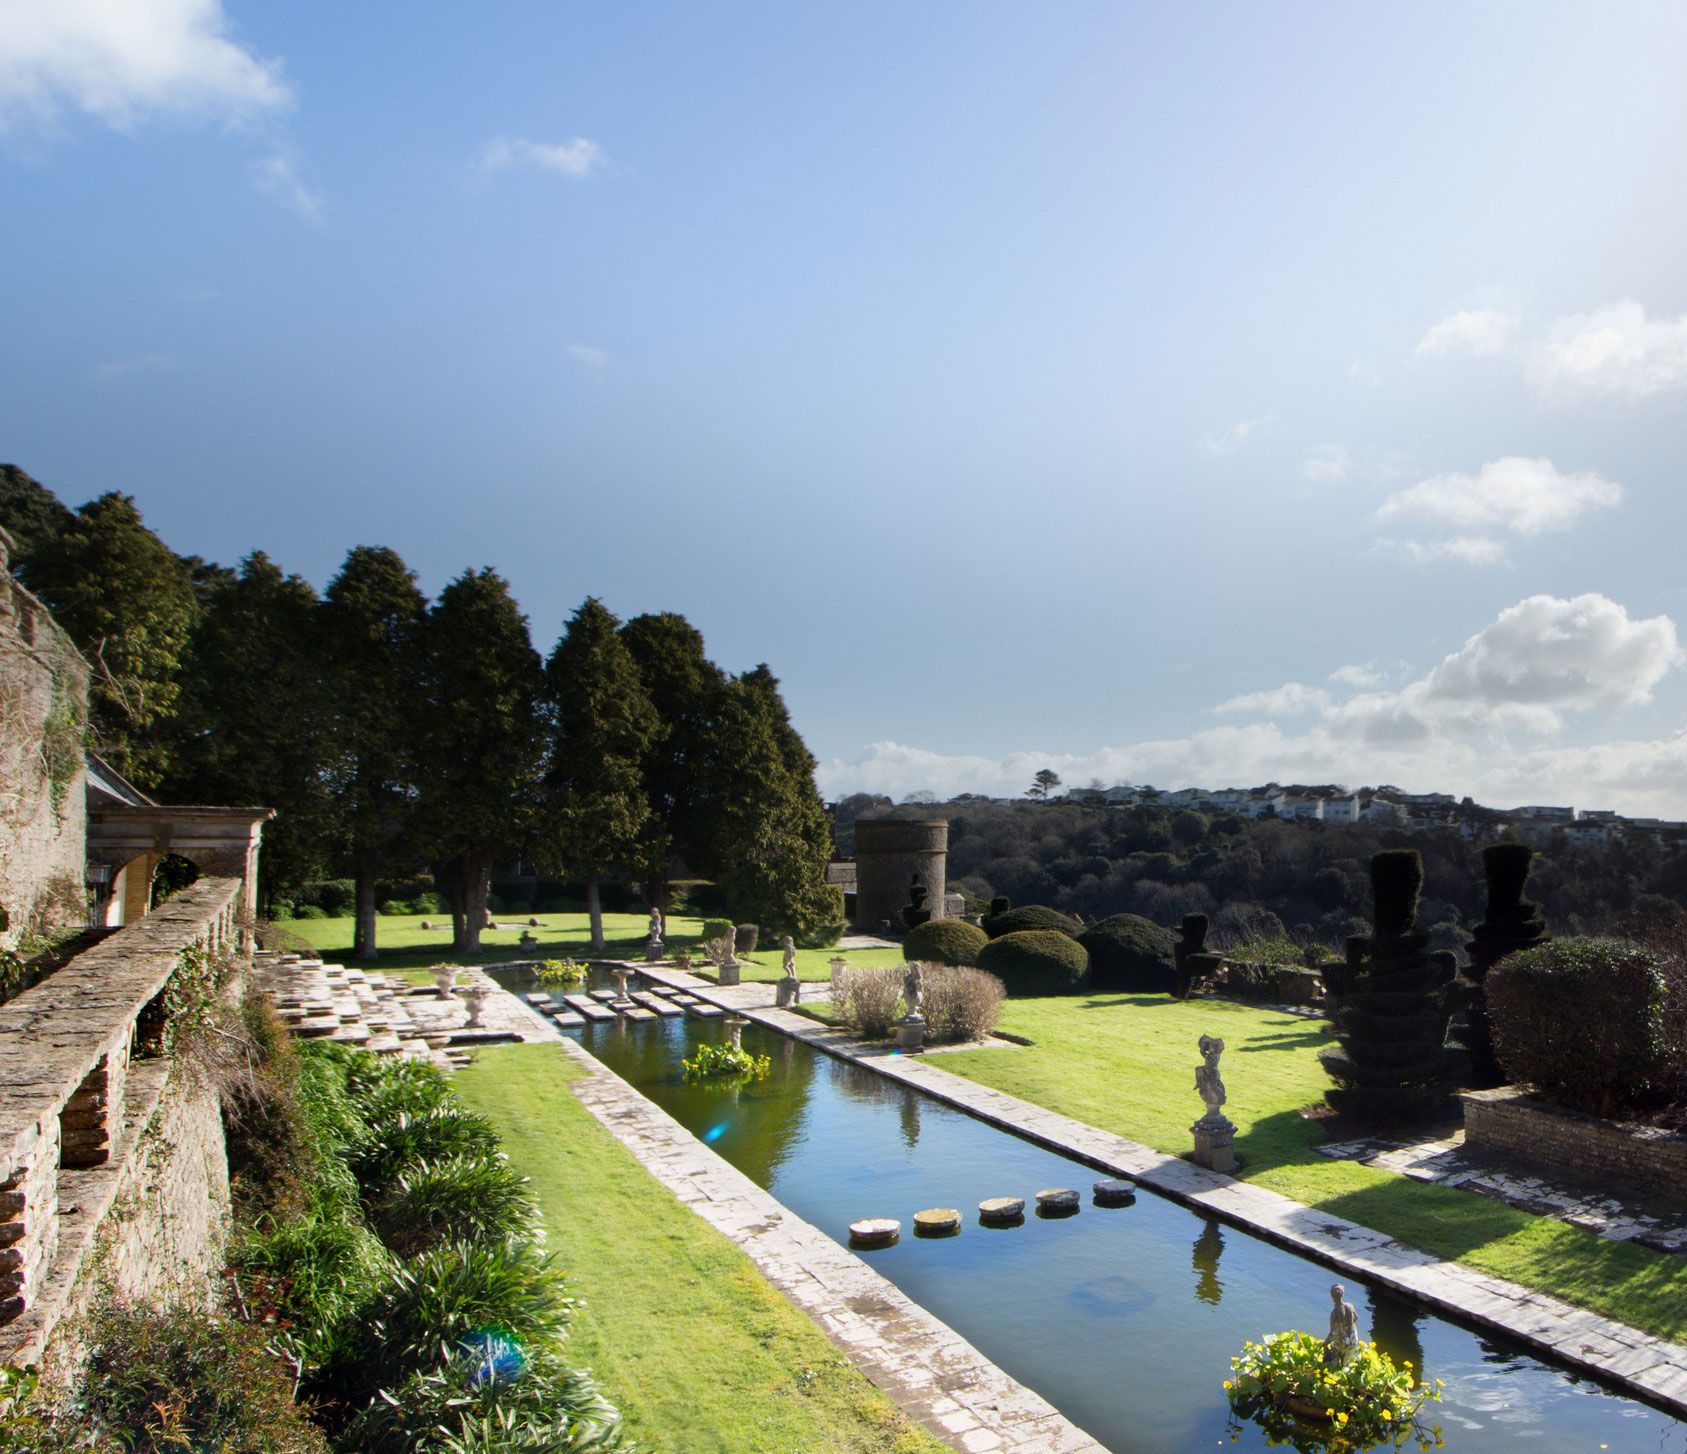 Mediaeval meets modern at this superb Devon fortress on a hill